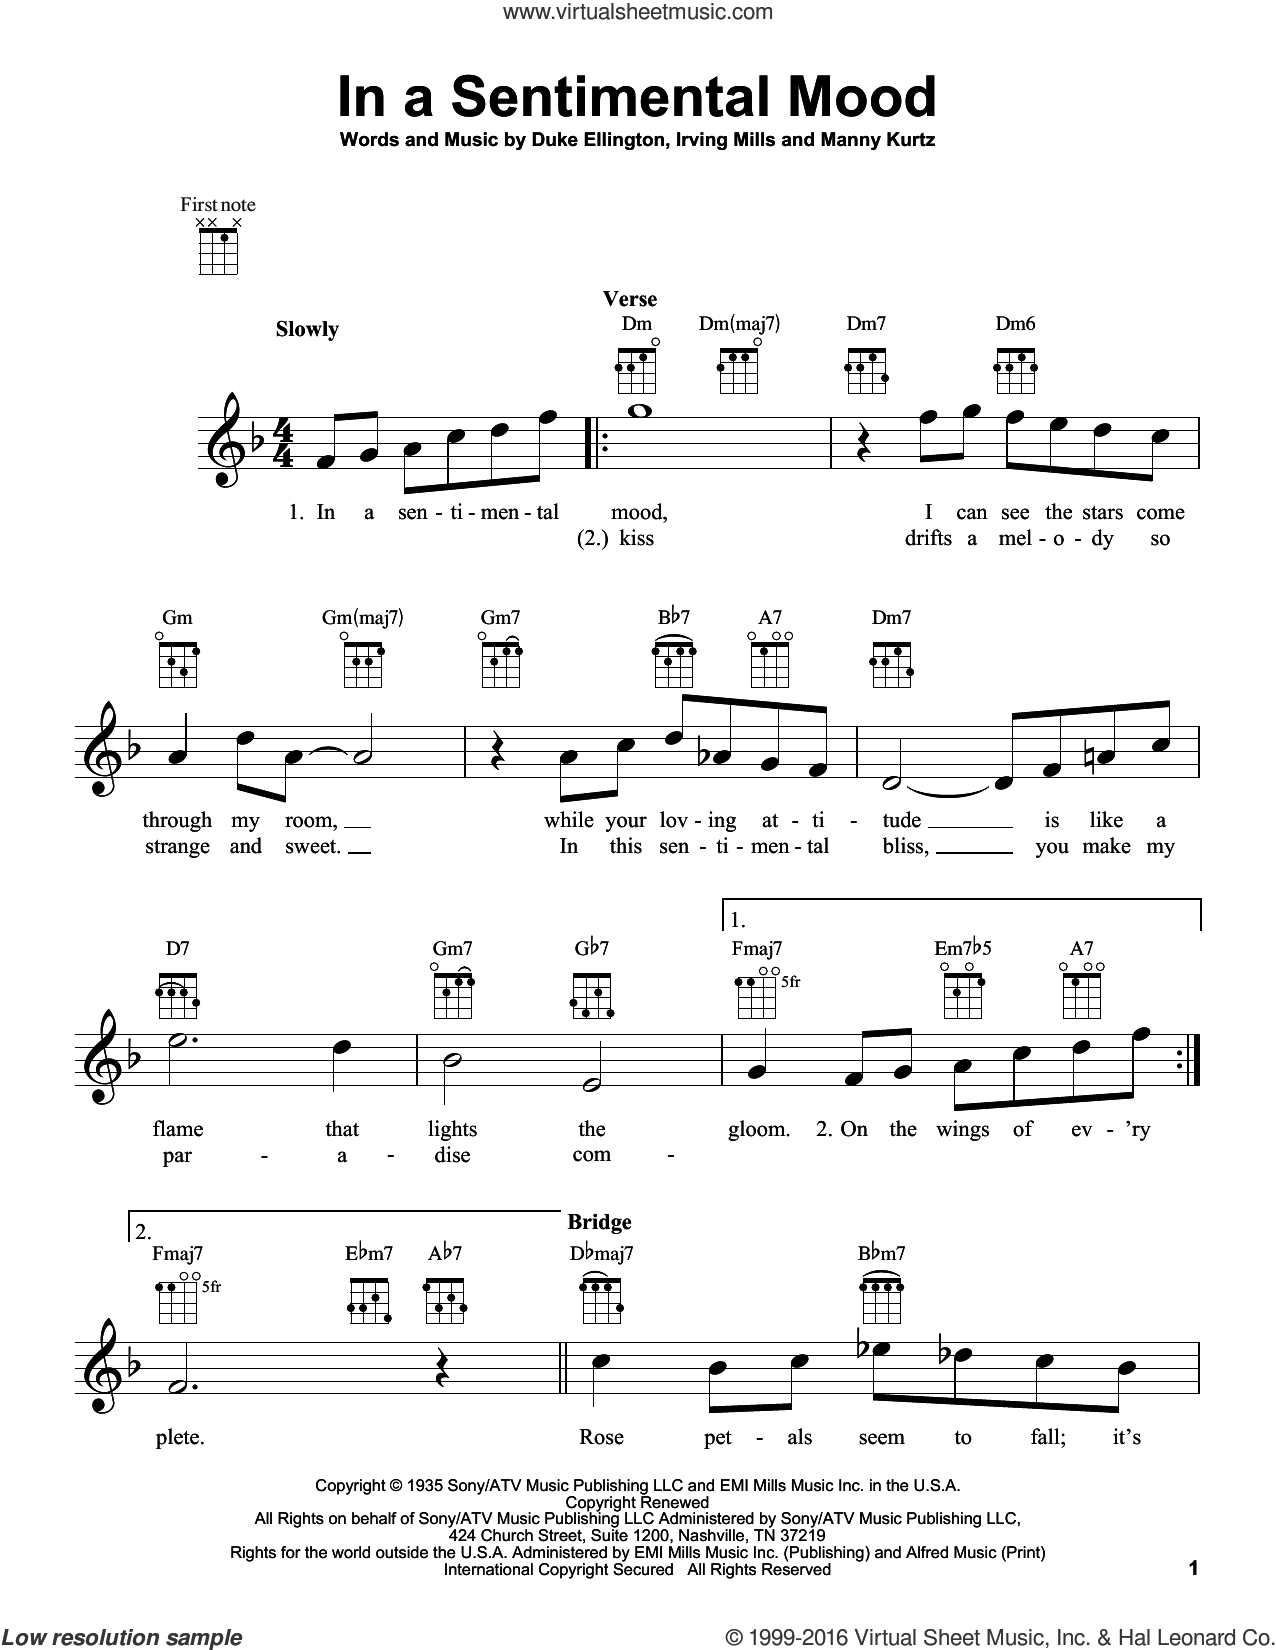 In A Sentimental Mood sheet music for ukulele by Manny Kurtz